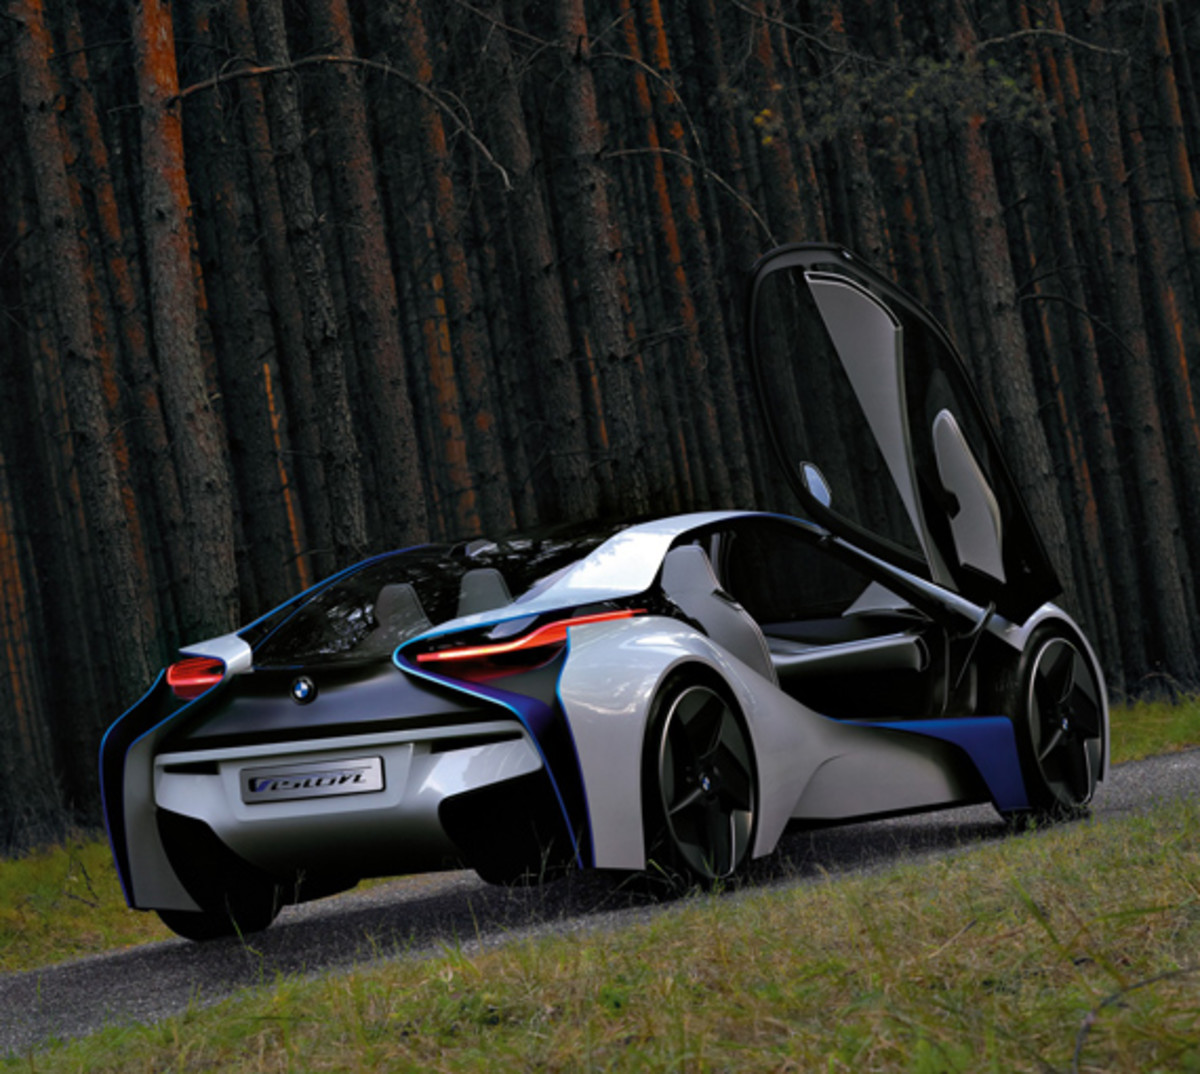 BMW-Vision-EfficientDynamics-woods-02